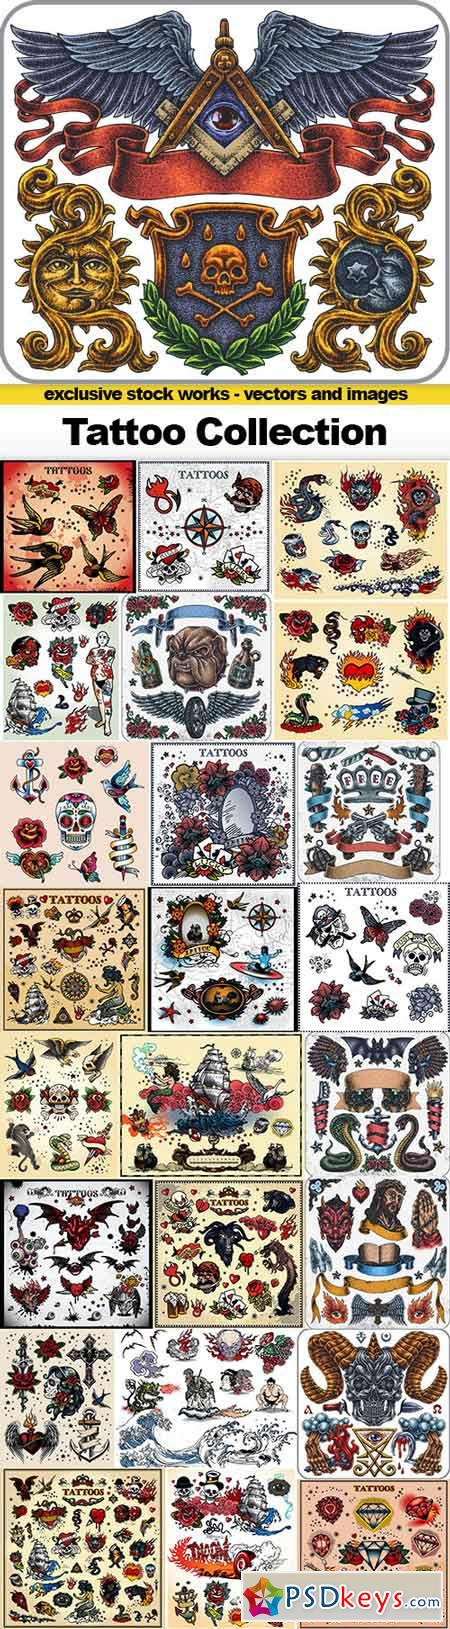 Tattoo Collection, 25x EPS